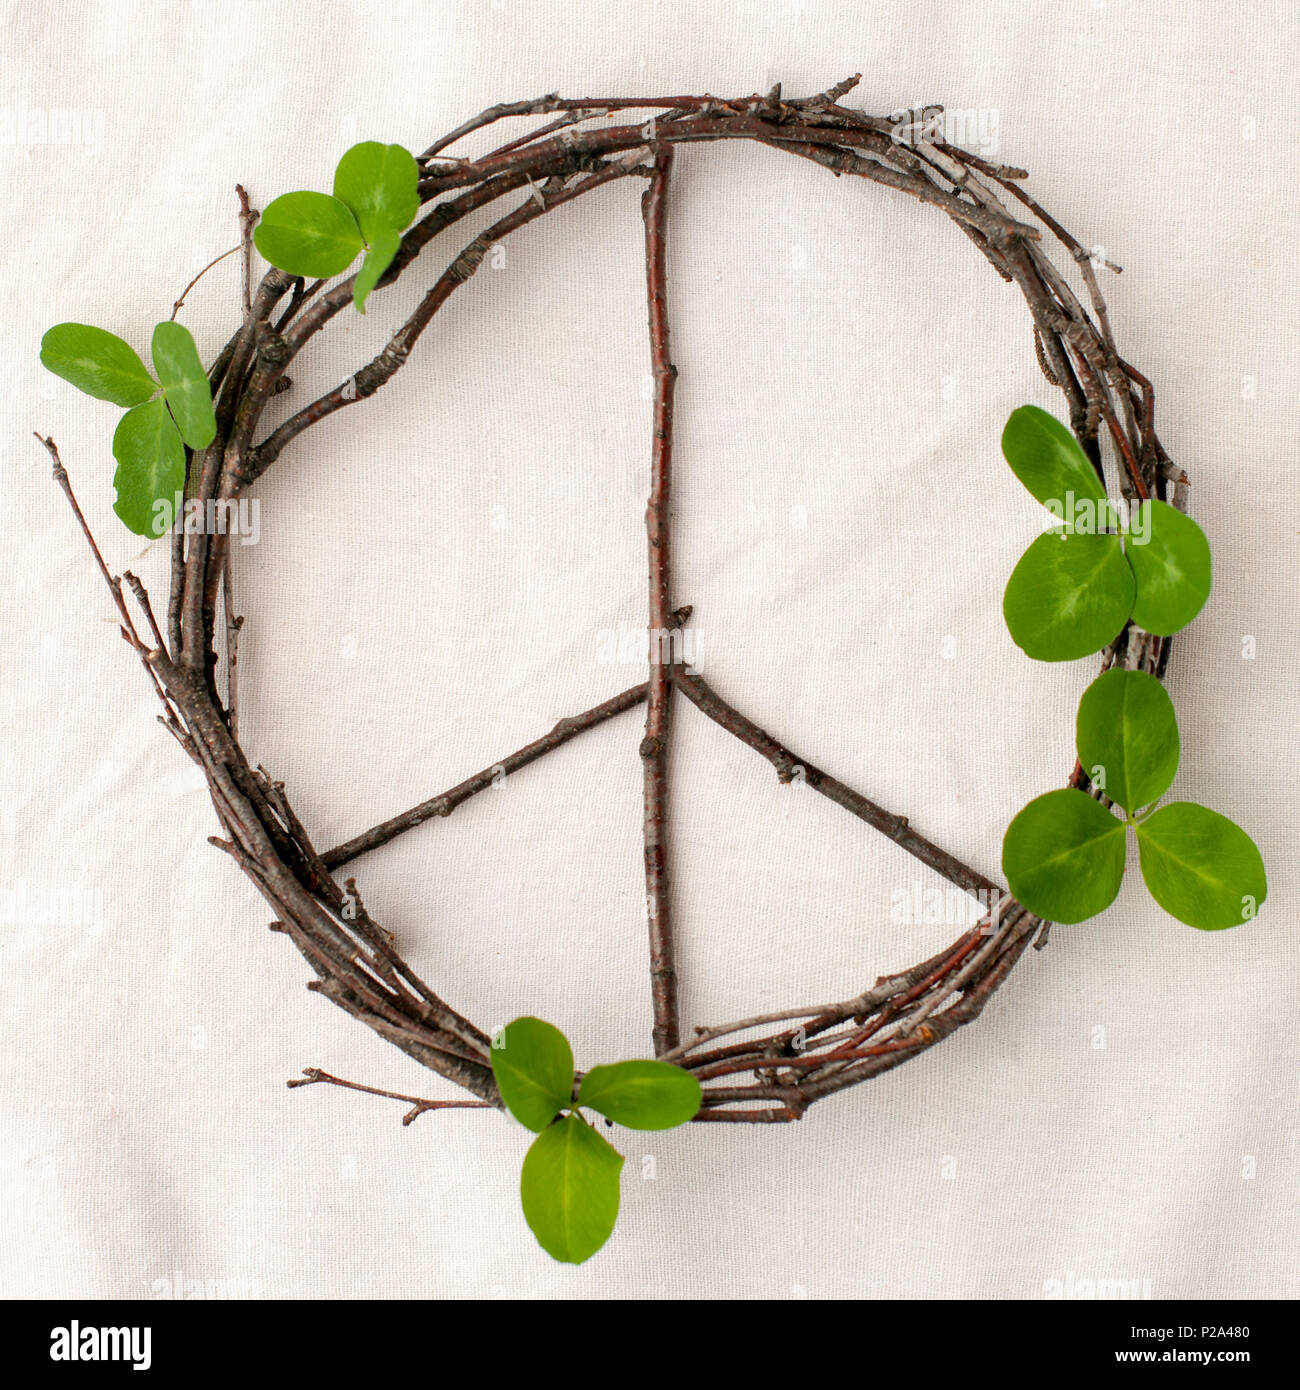 Peace Sign Symbol Of Natural Material Flowers Leaves Wooden